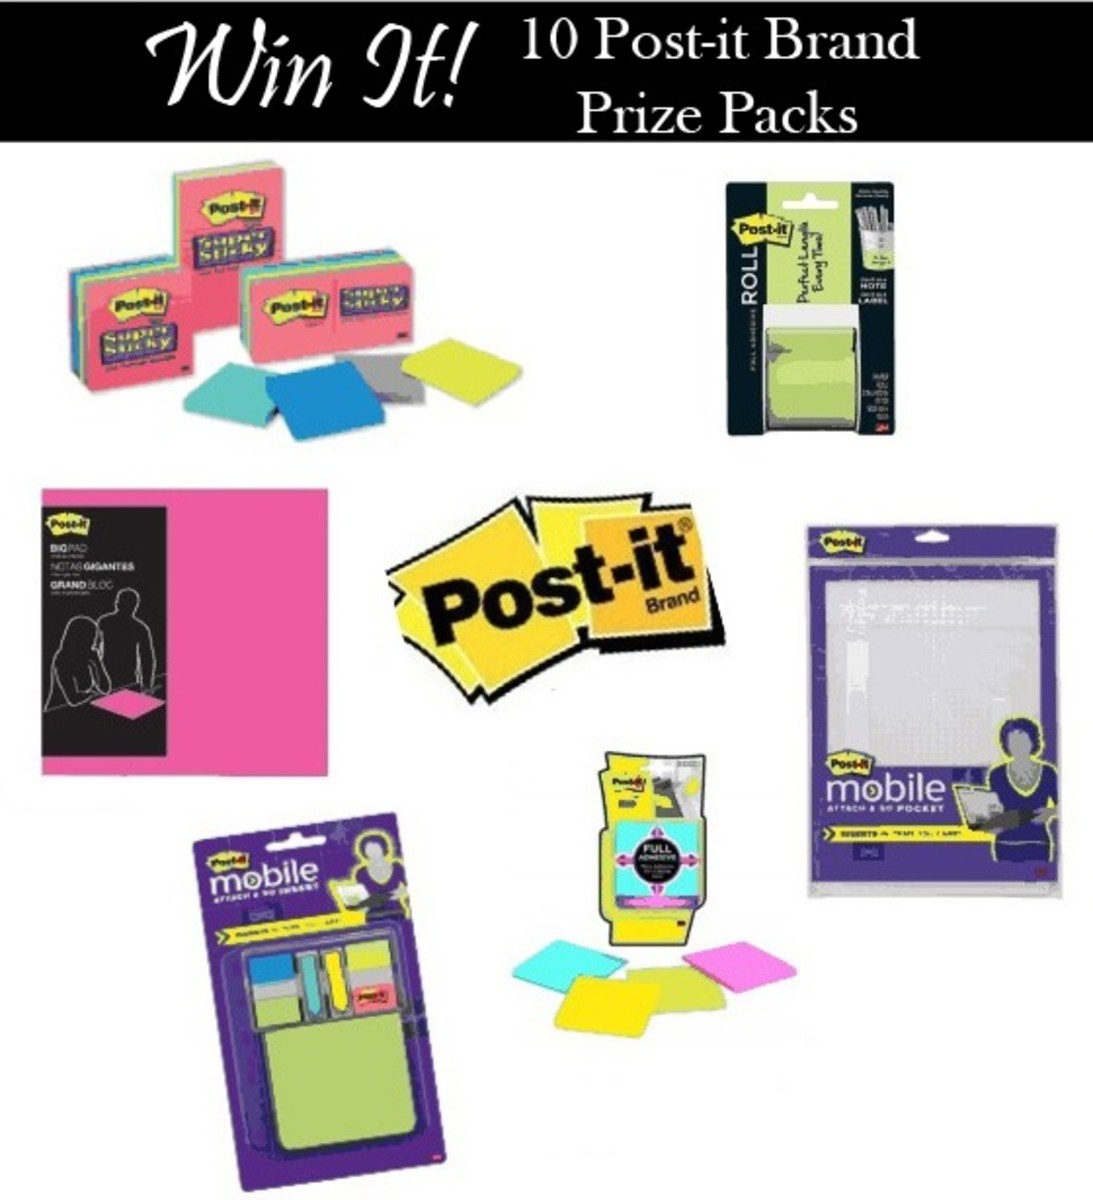 Post-it Prize Pack Giveaways via @Glamamom